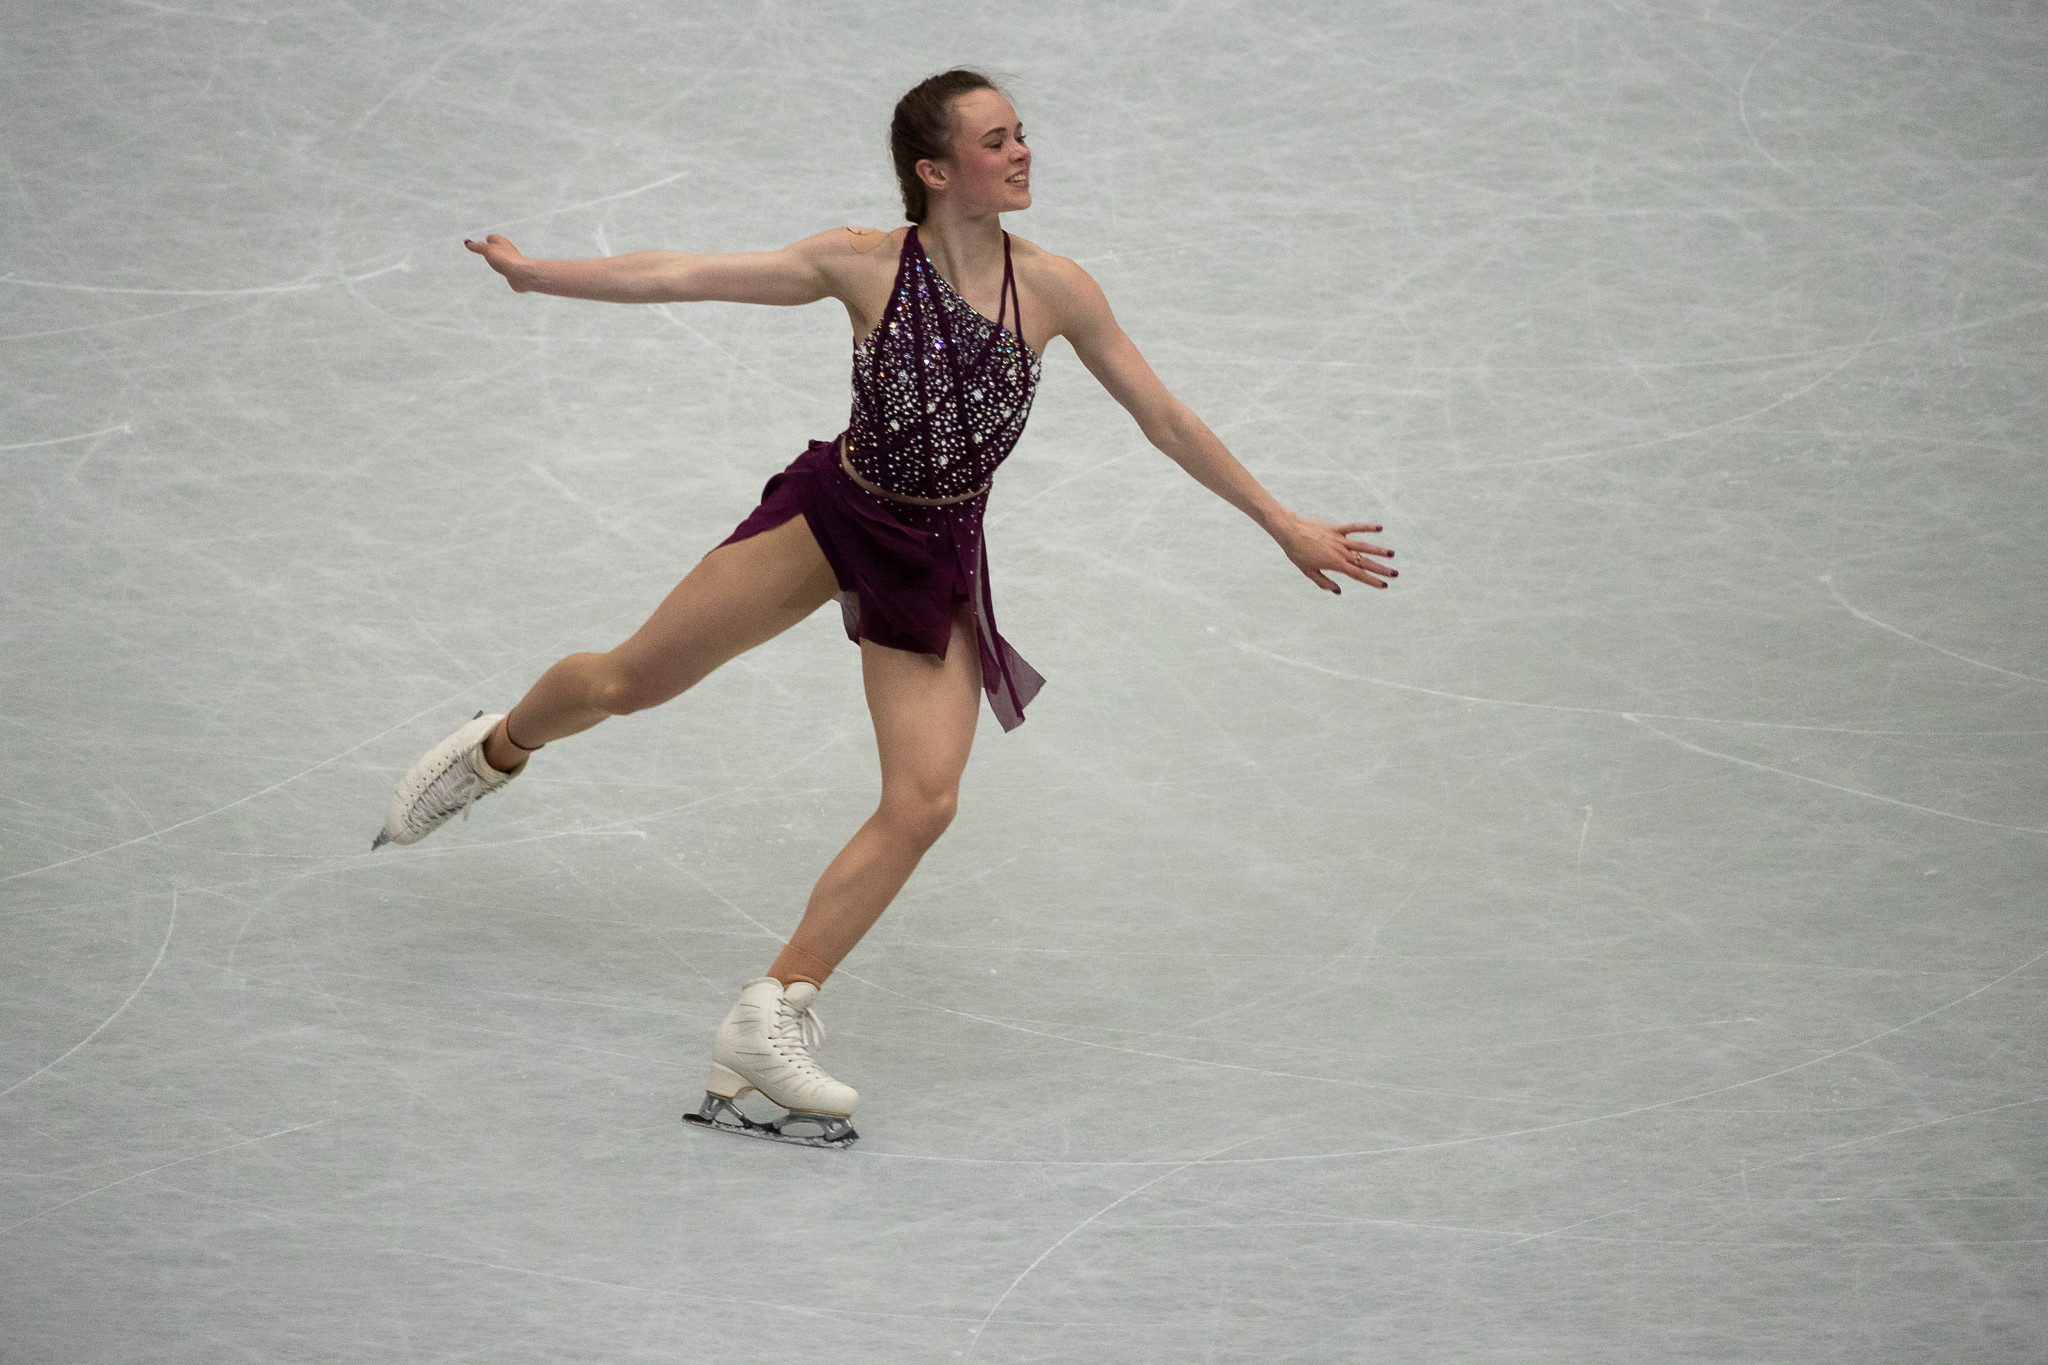 The ISU said there was currently no evidence against Mariah Bell ©Getty Images